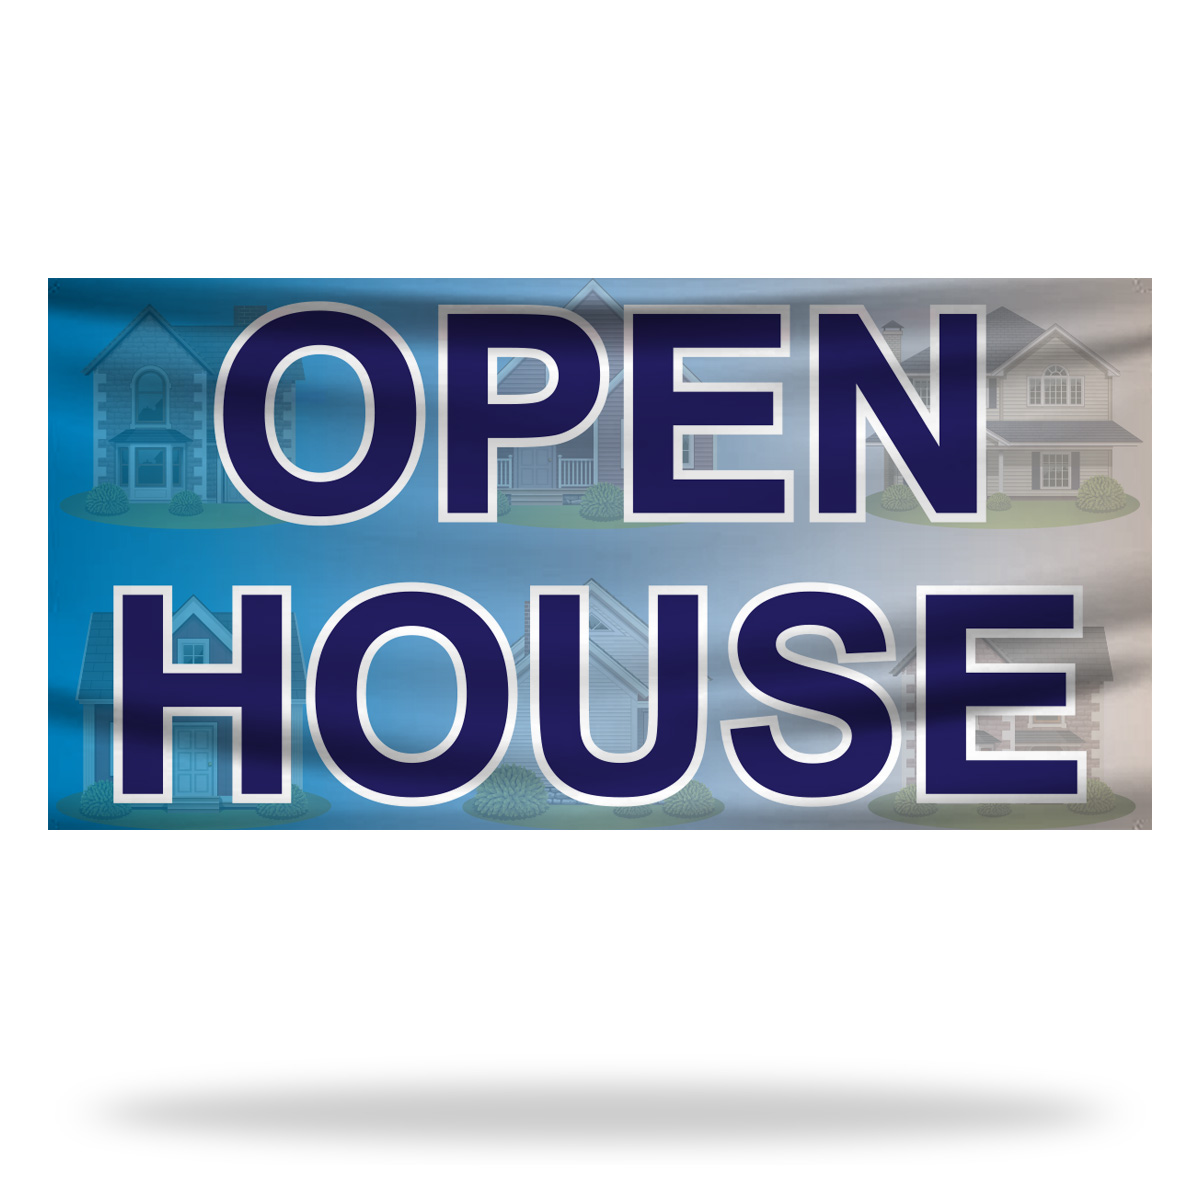 Open House Flags & Banners Design 02